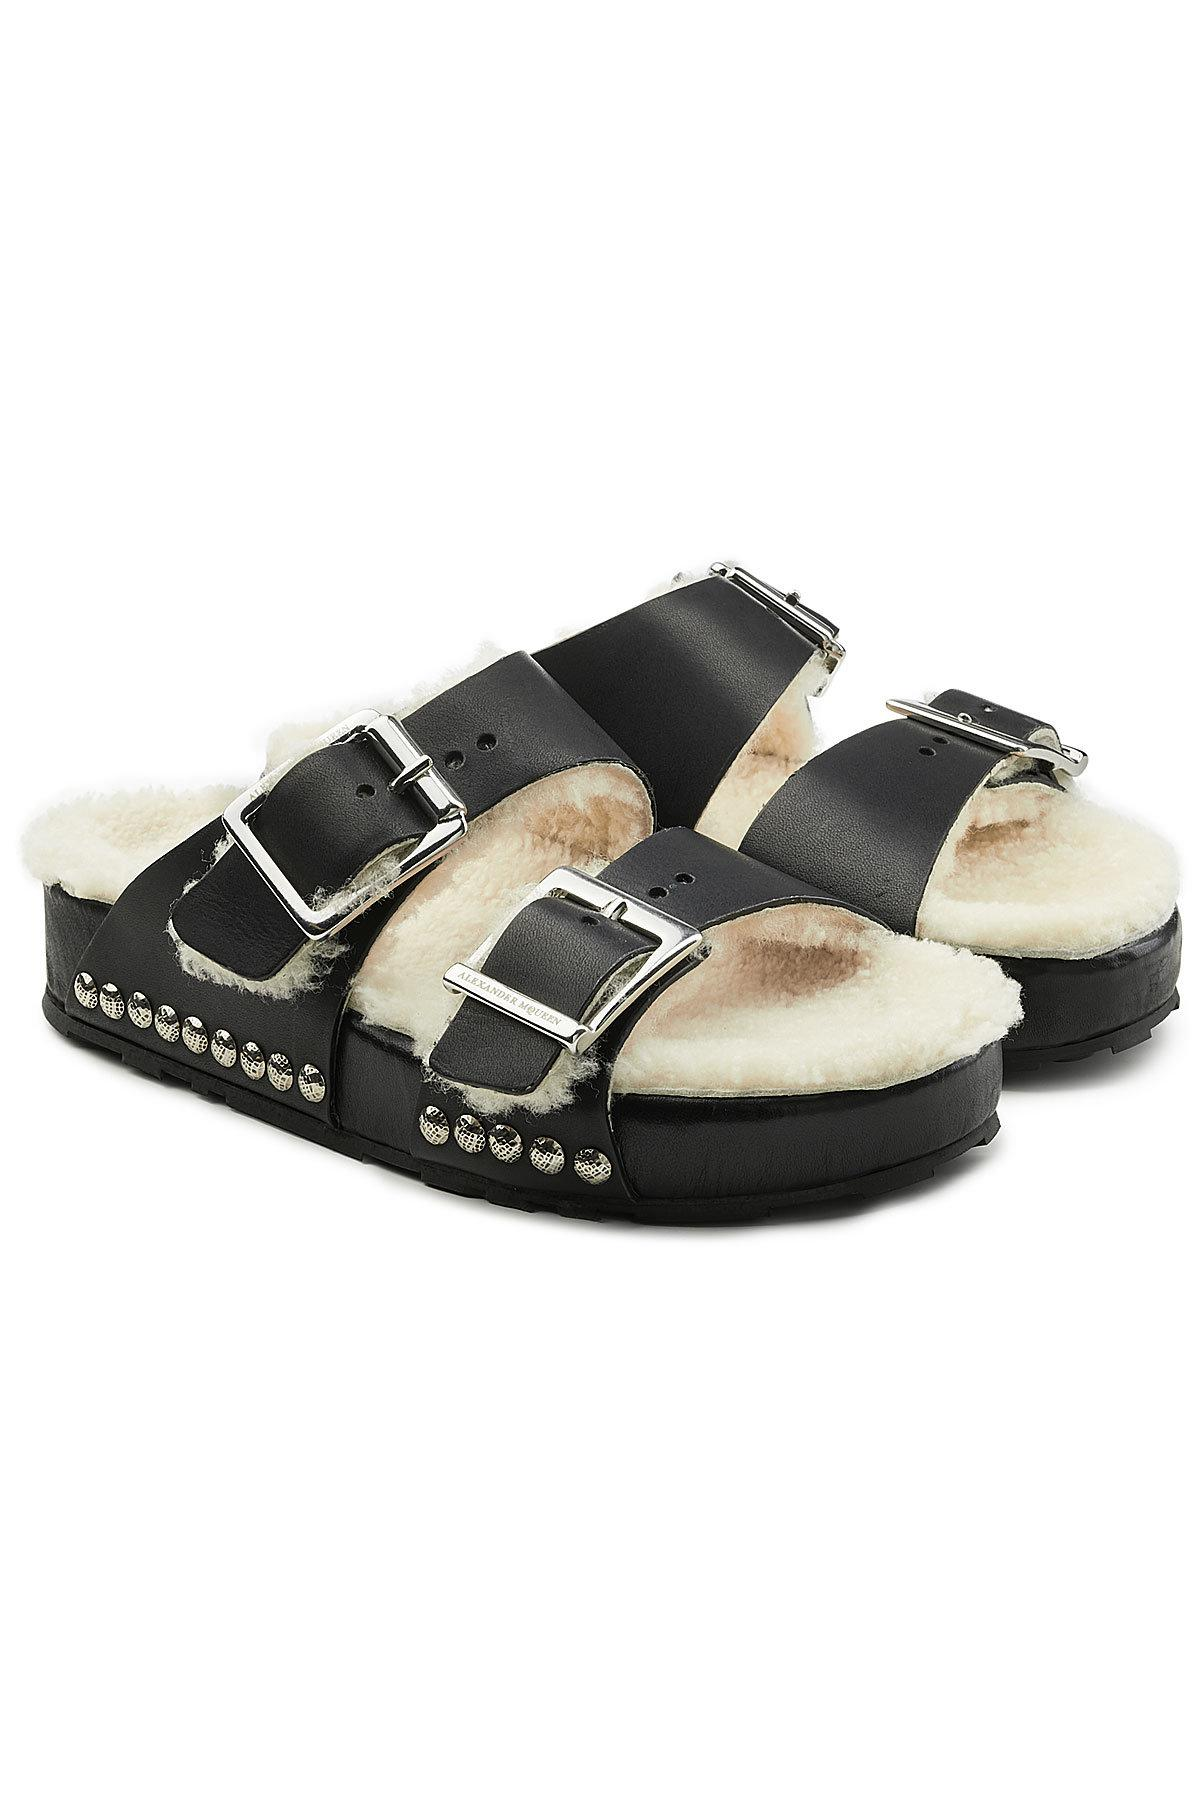 Black and Off-White Shearling Strap Sandals Alexander McQueen 5tl9F